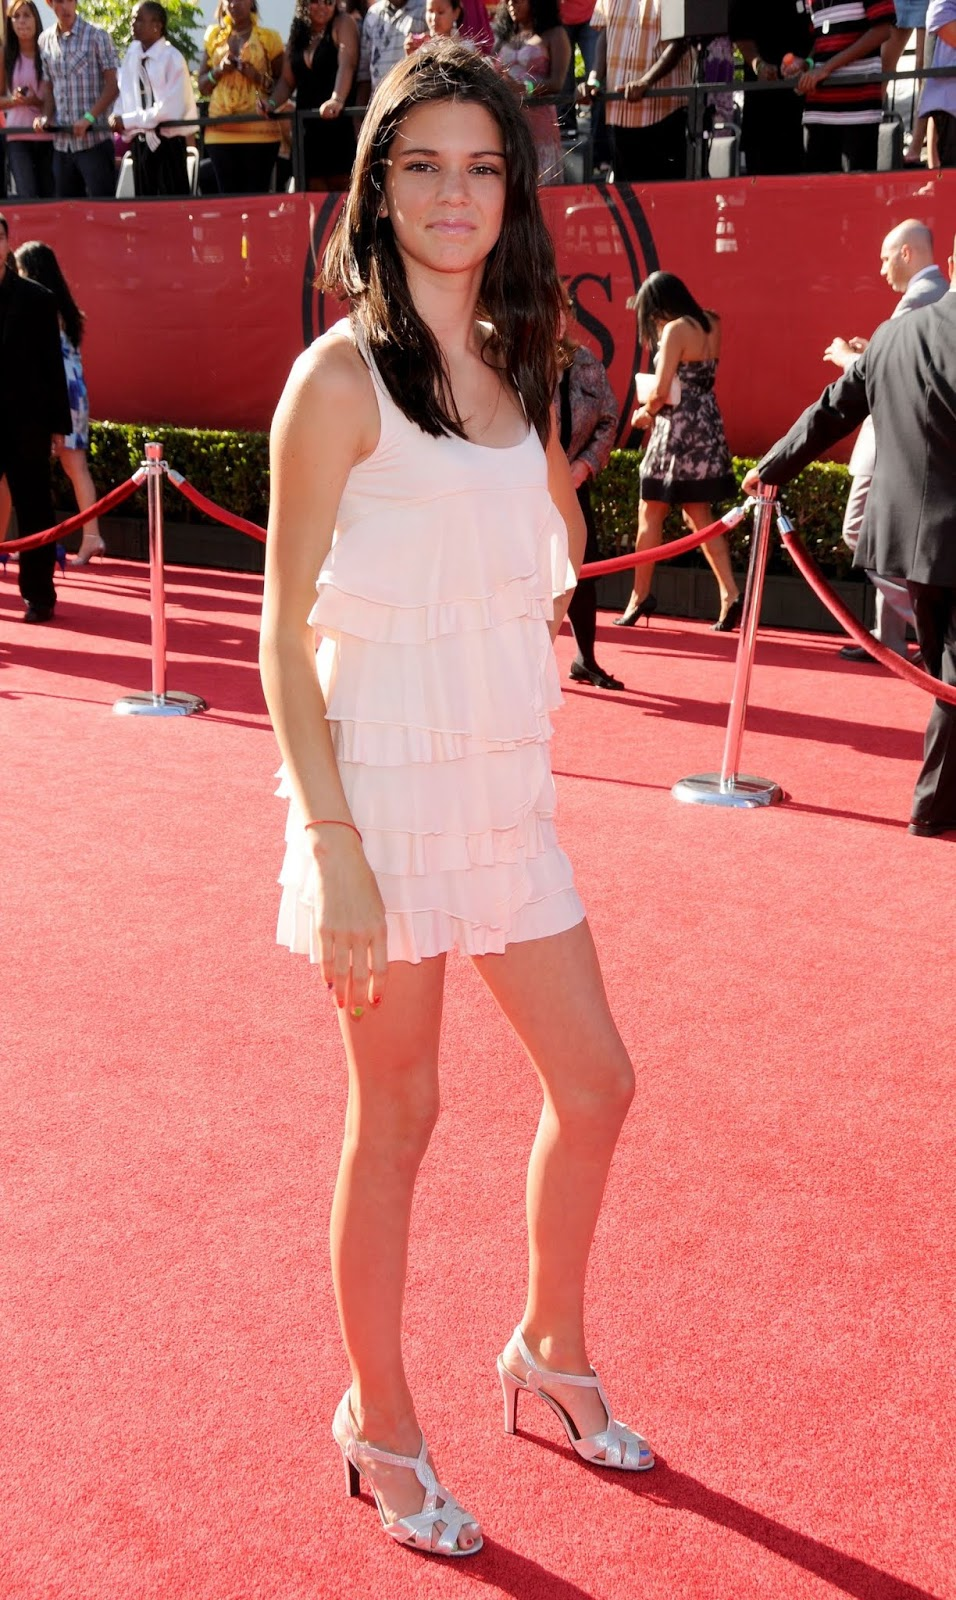 15-07-2009 17th Annual ESPY Awards-16